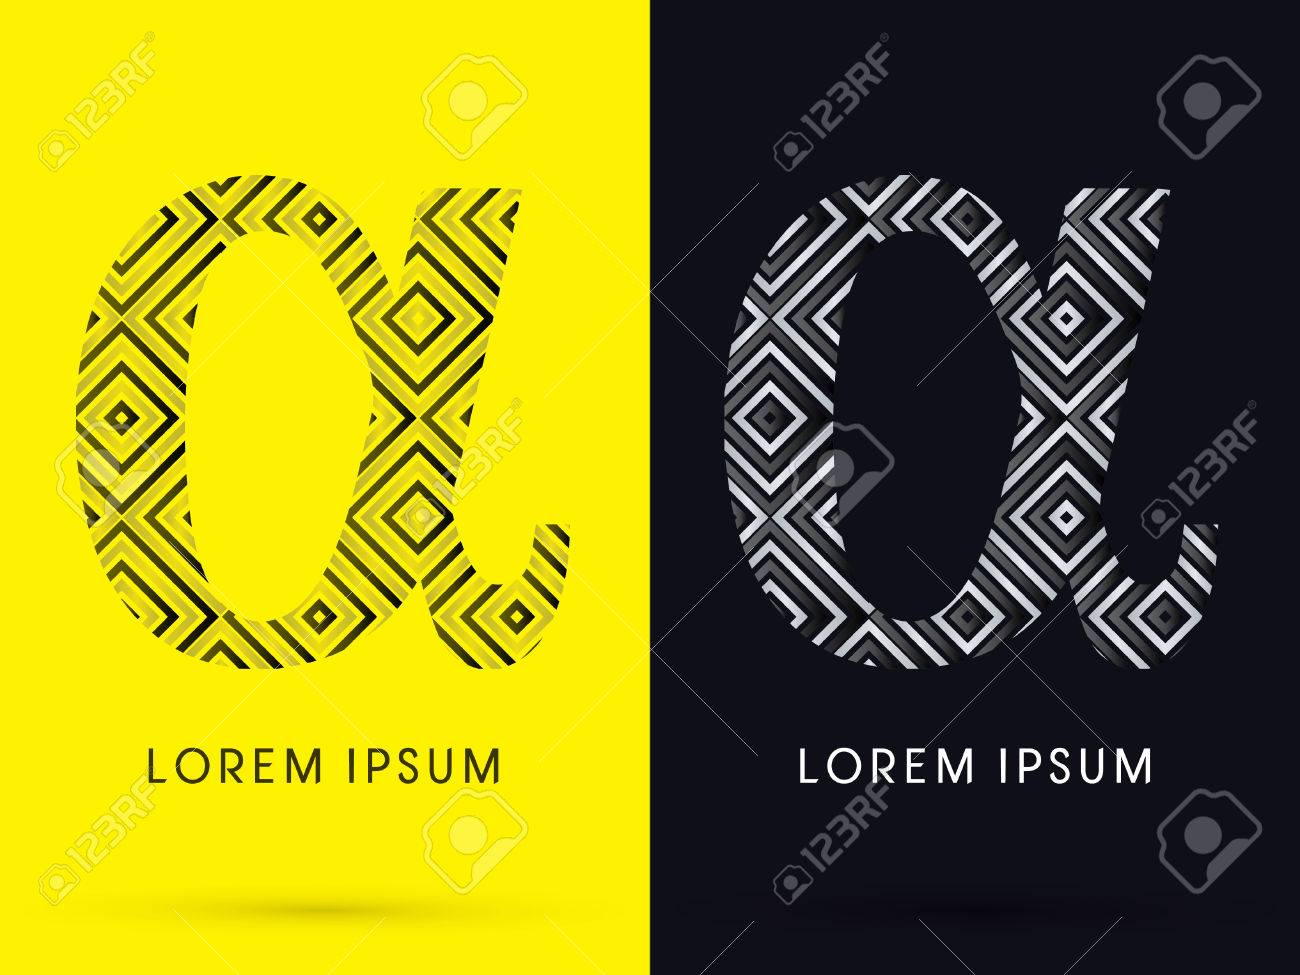 Alpha Luxury Font Designed Using Black And White Line Square